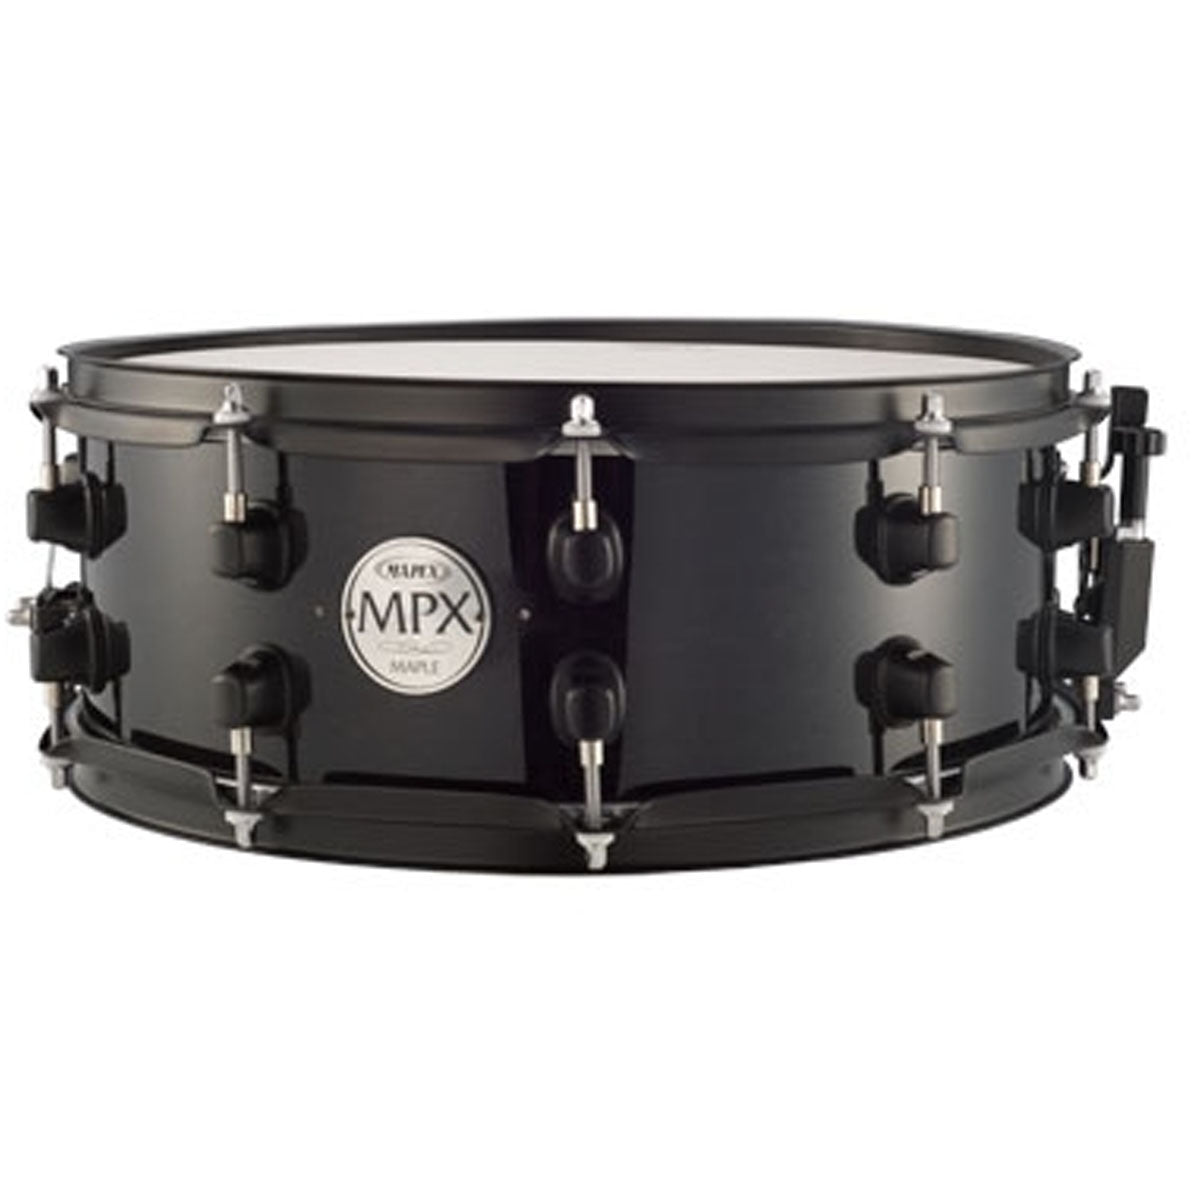 Mapex MPX Snare Drum Maple 14x5.5inch Midnight Black w/ Black Hardware